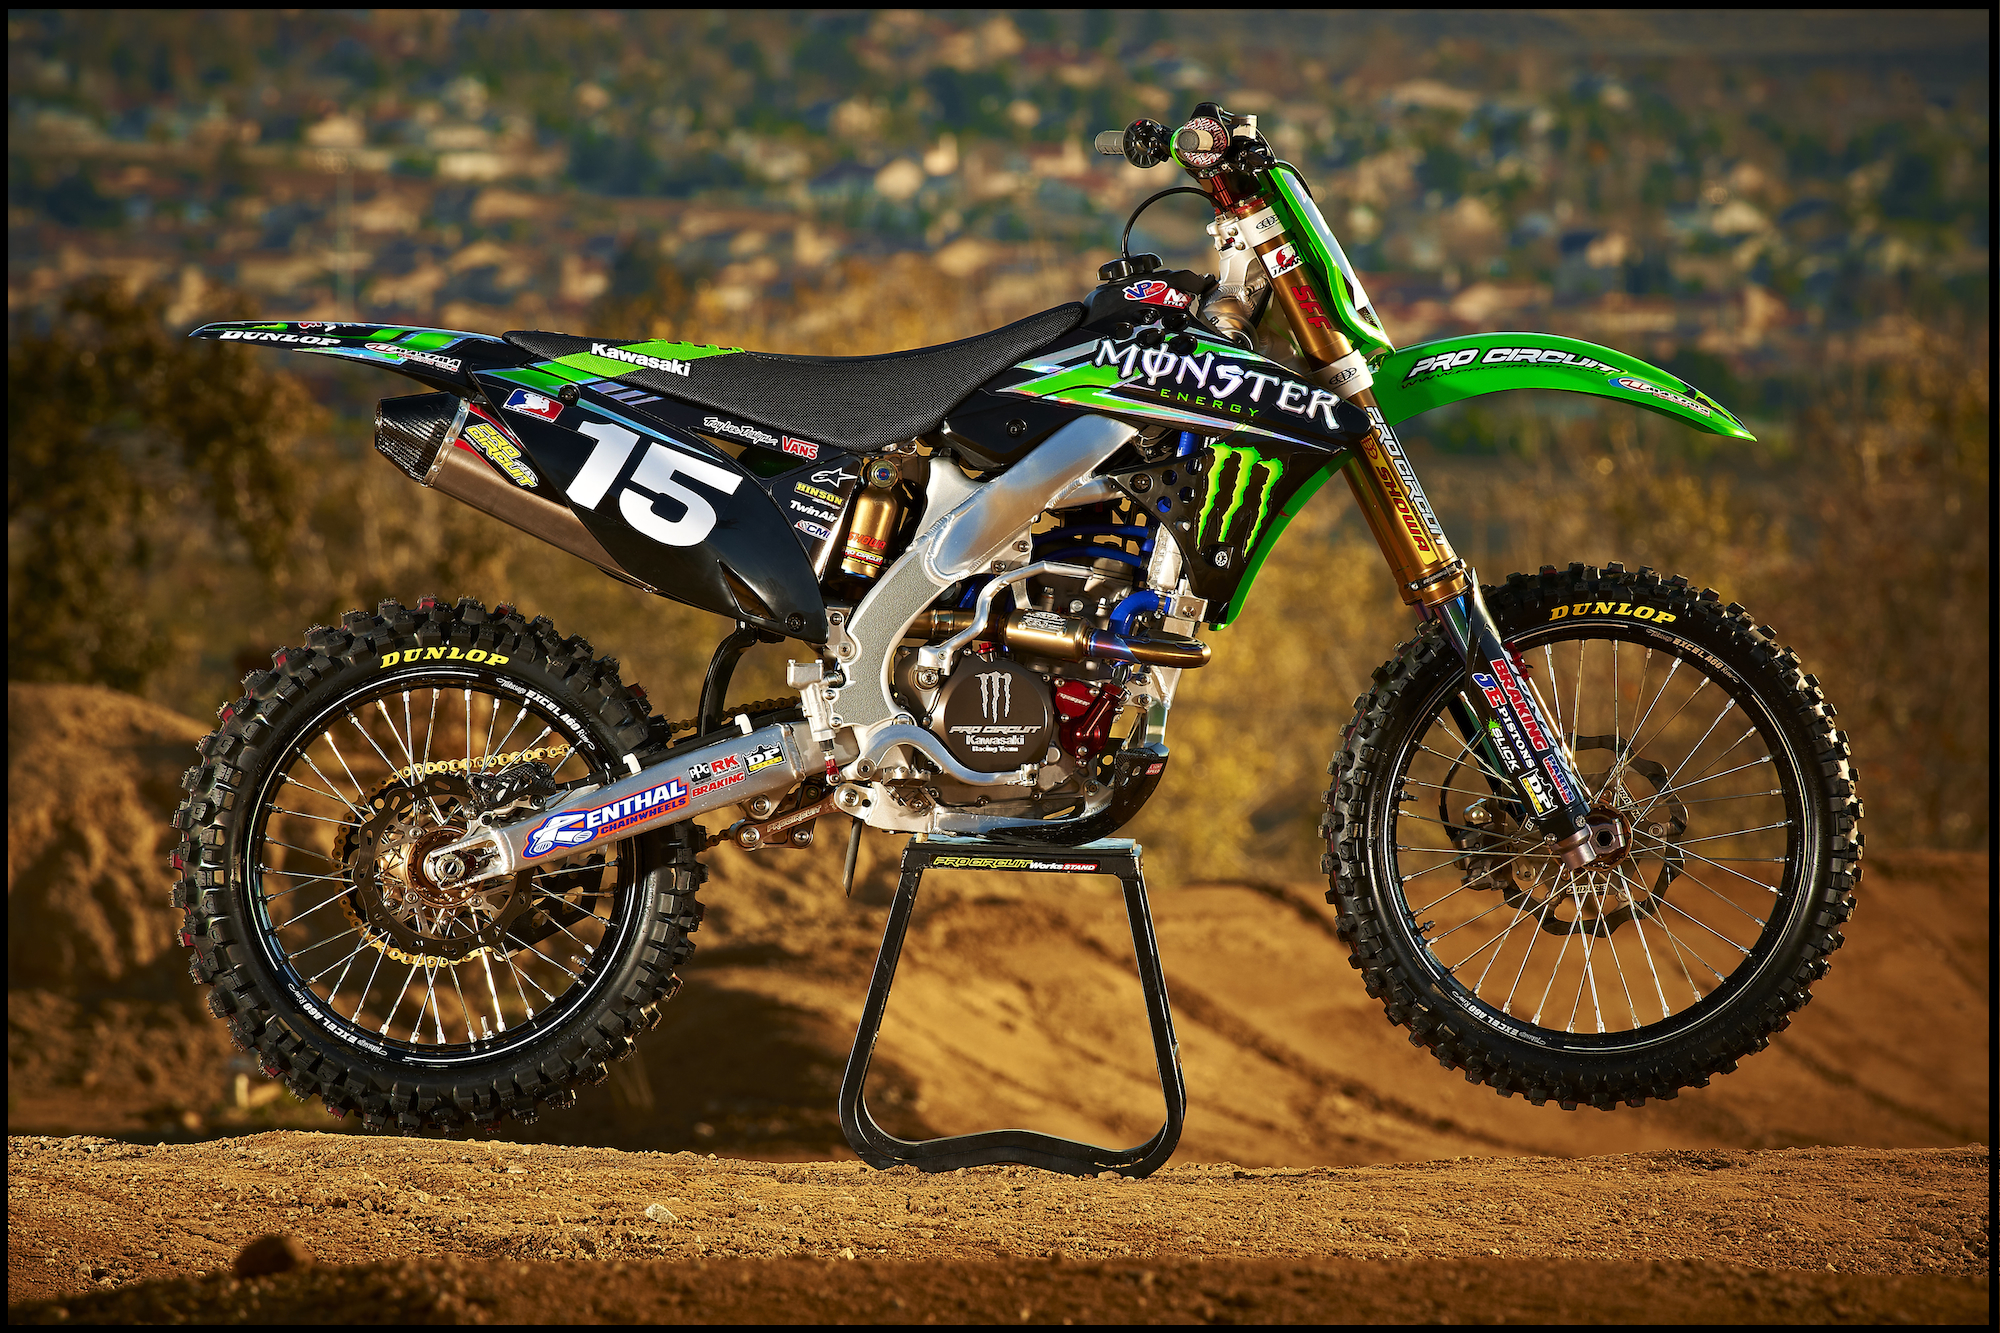 Kawasaki KLX140 Monster Energy #10